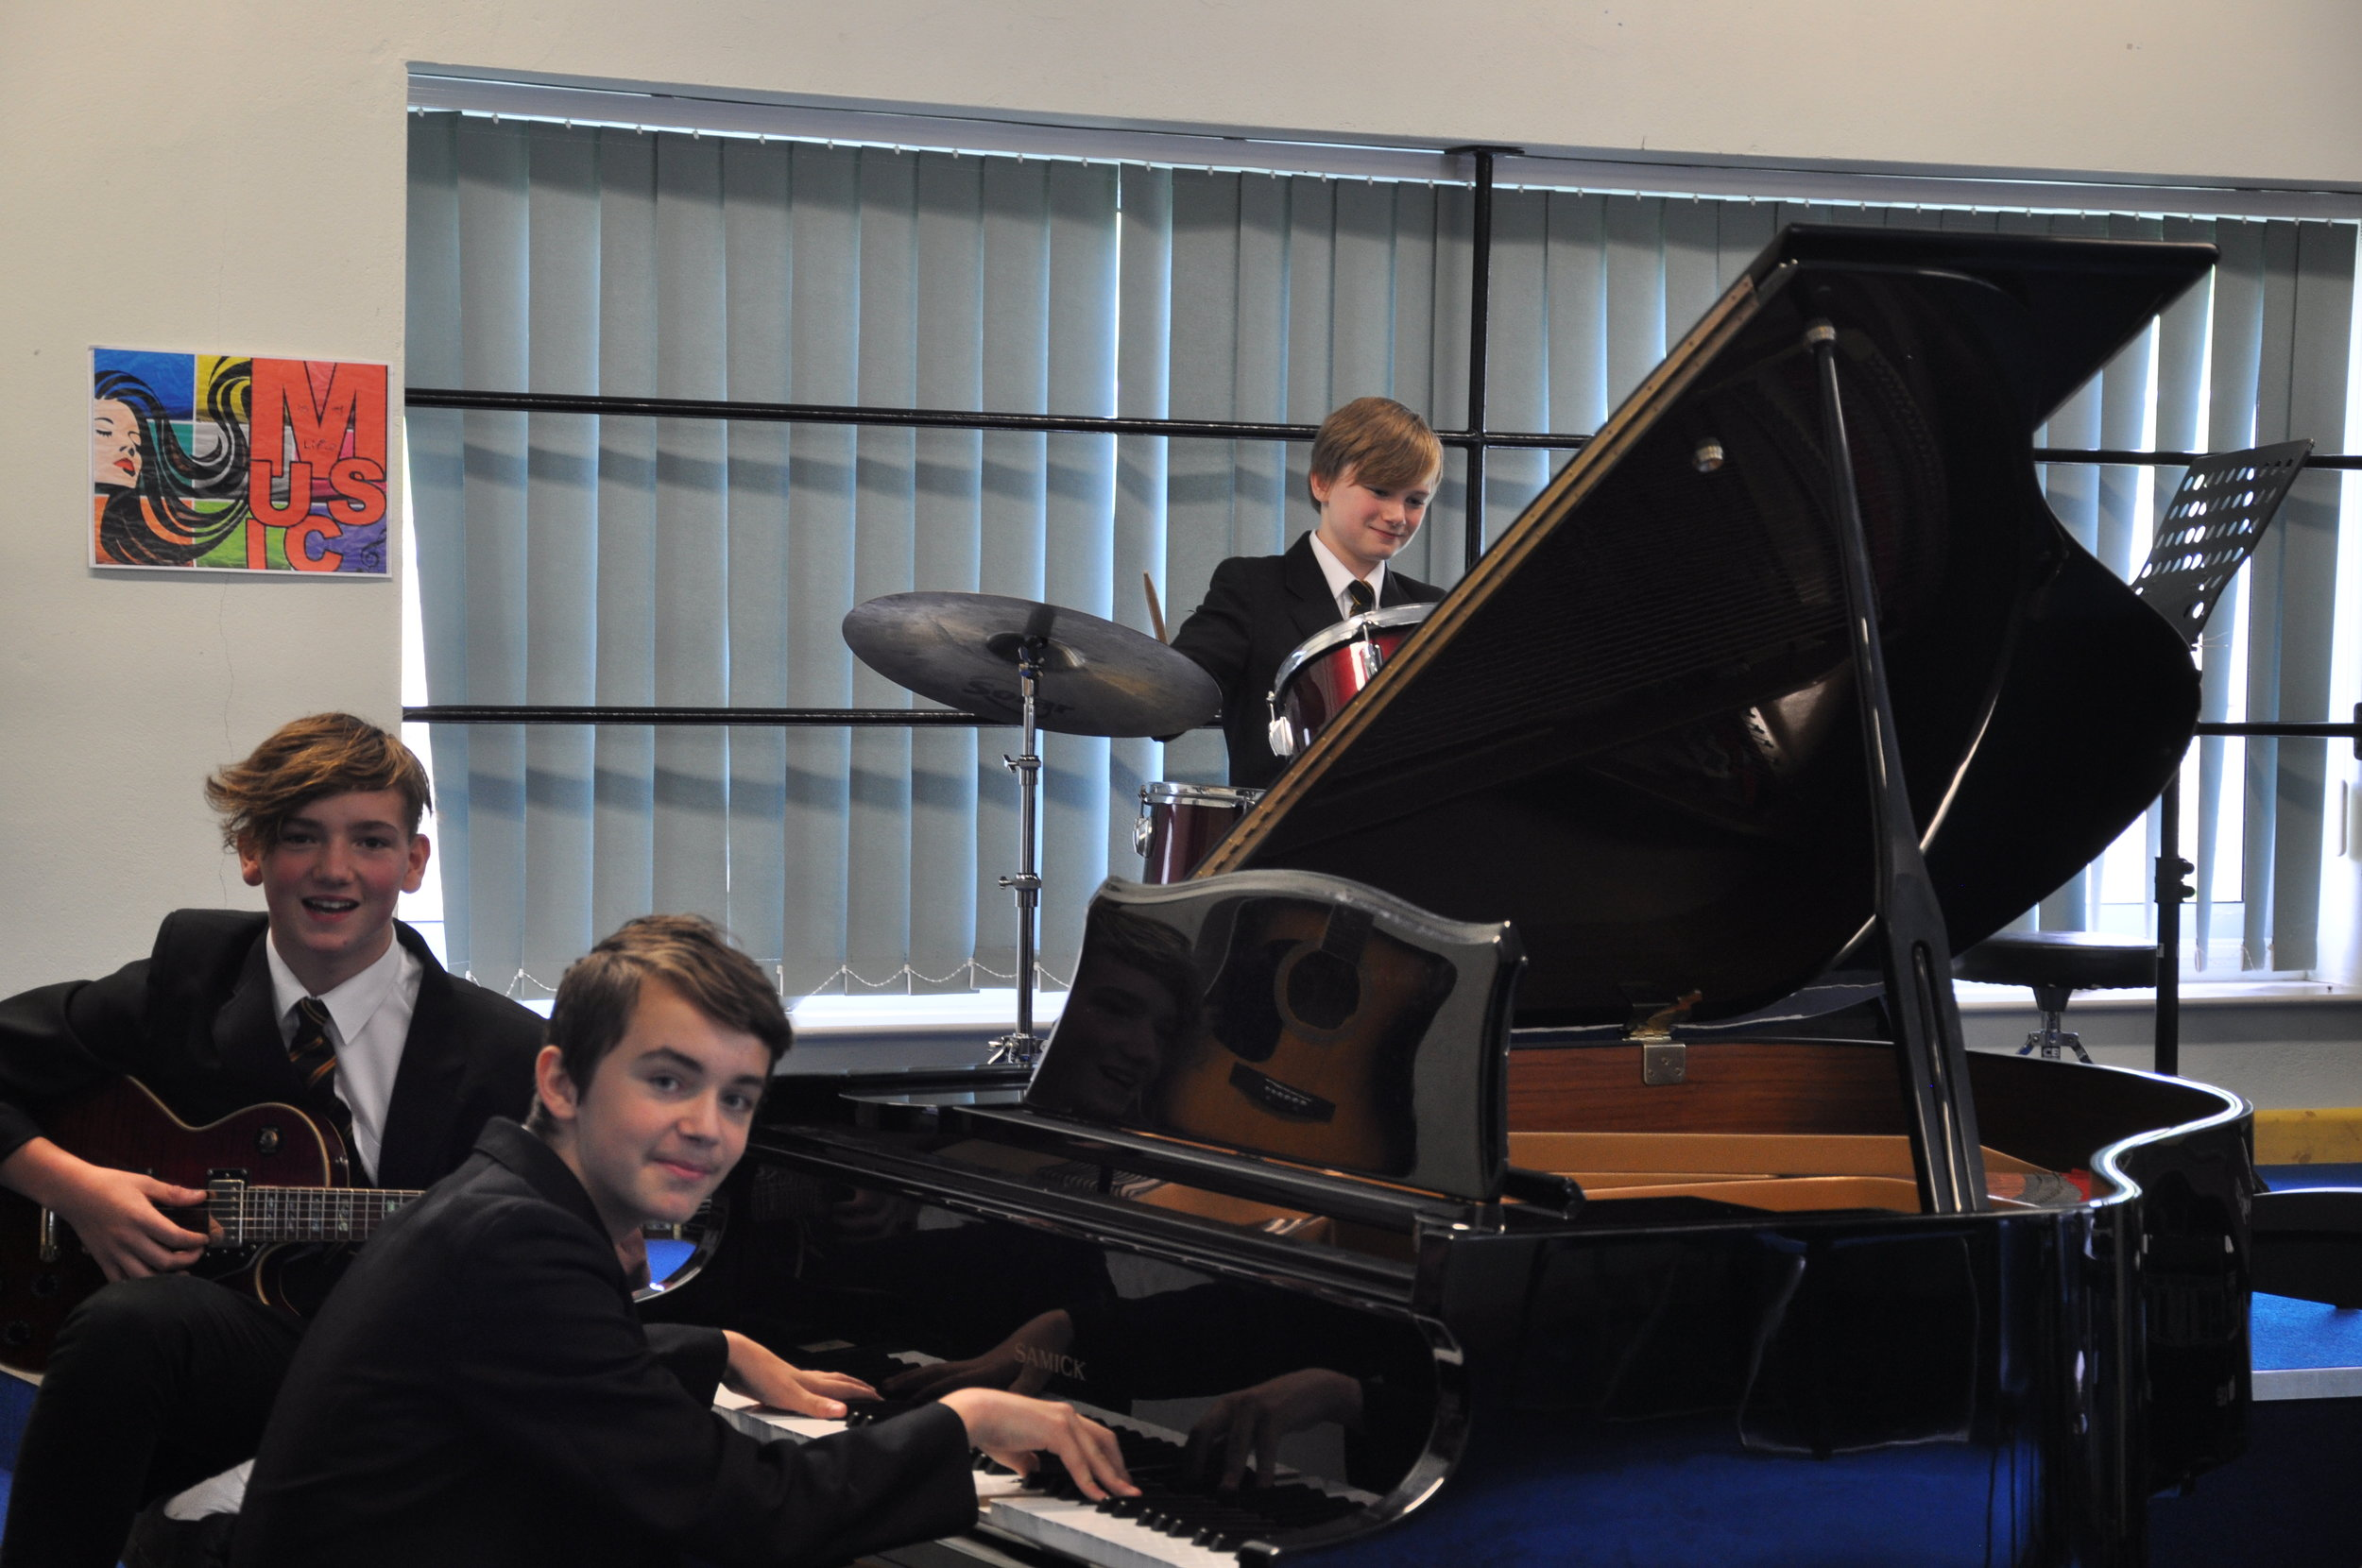 Pool Academy students rehearsing for School of Rock musical